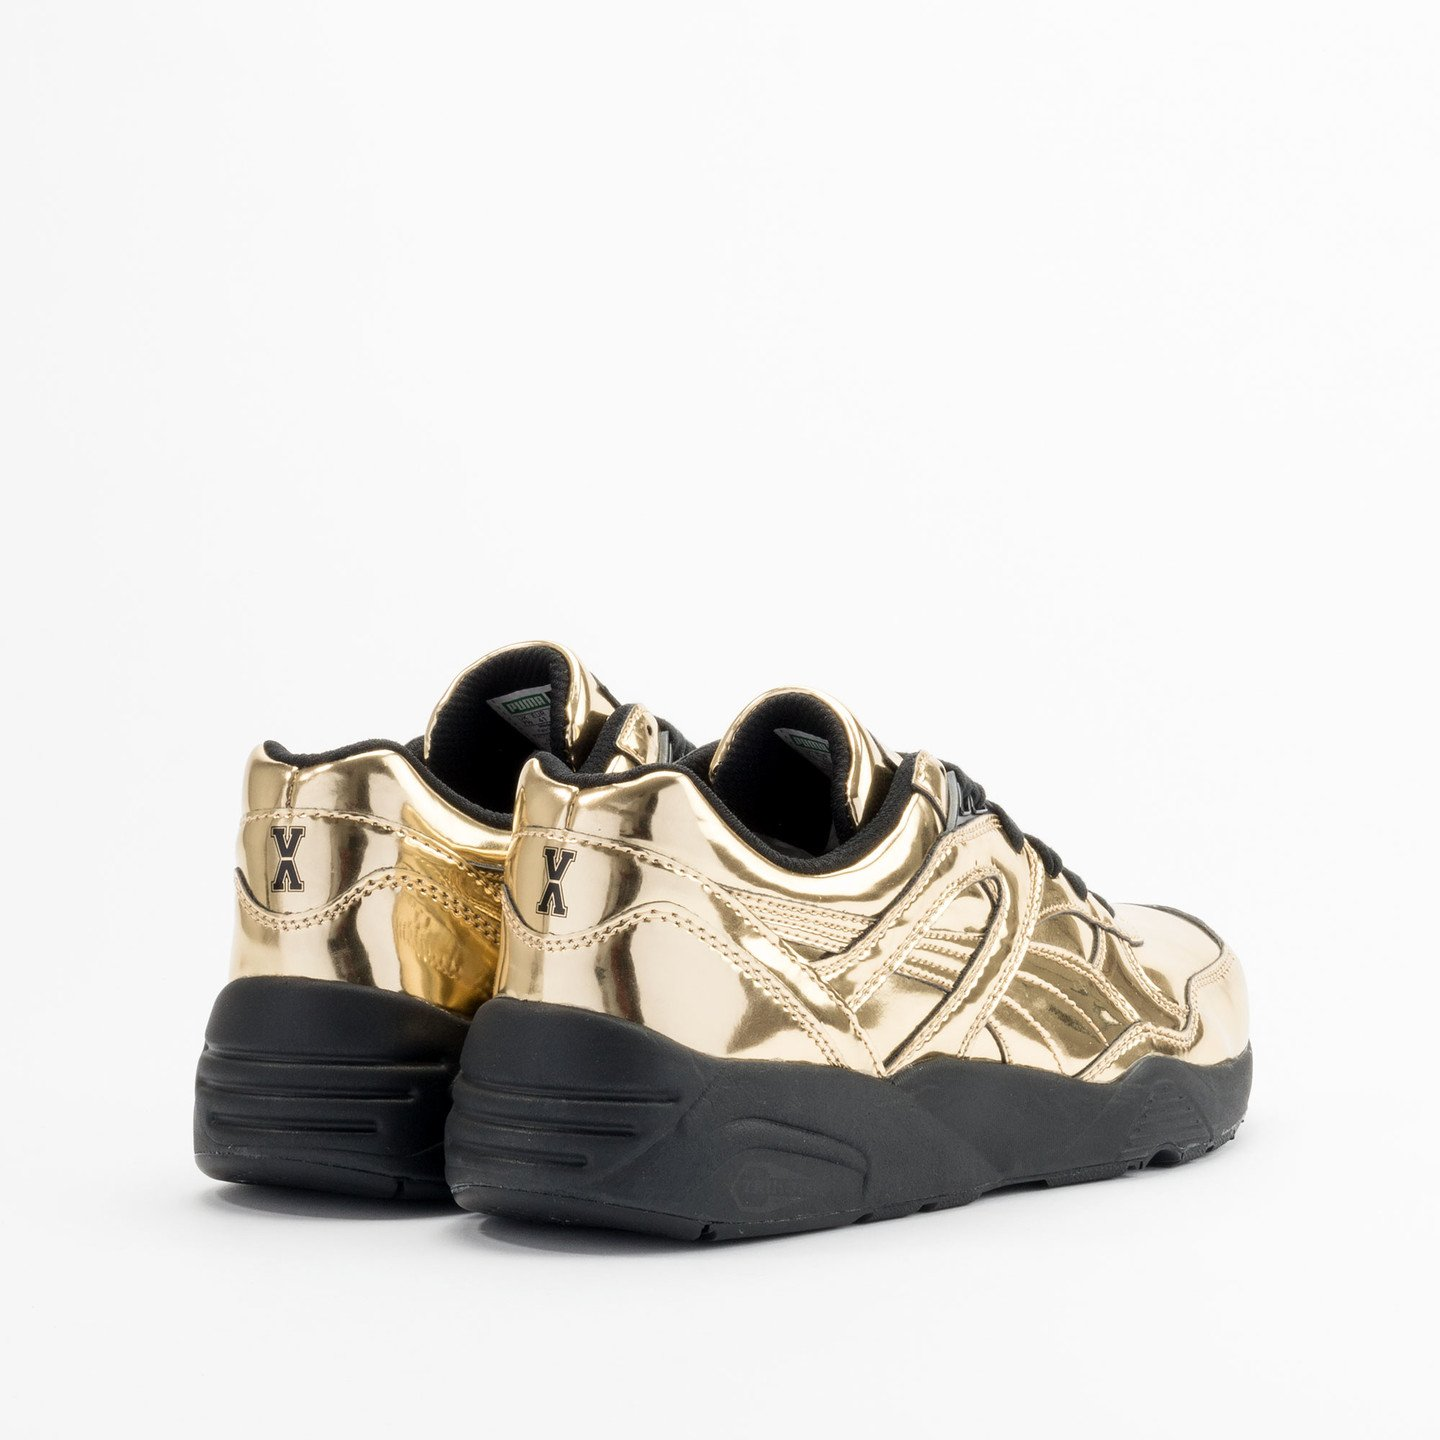 Puma R698 x Vashtie Gold Metallic Gold / Black 358838 01-44.5